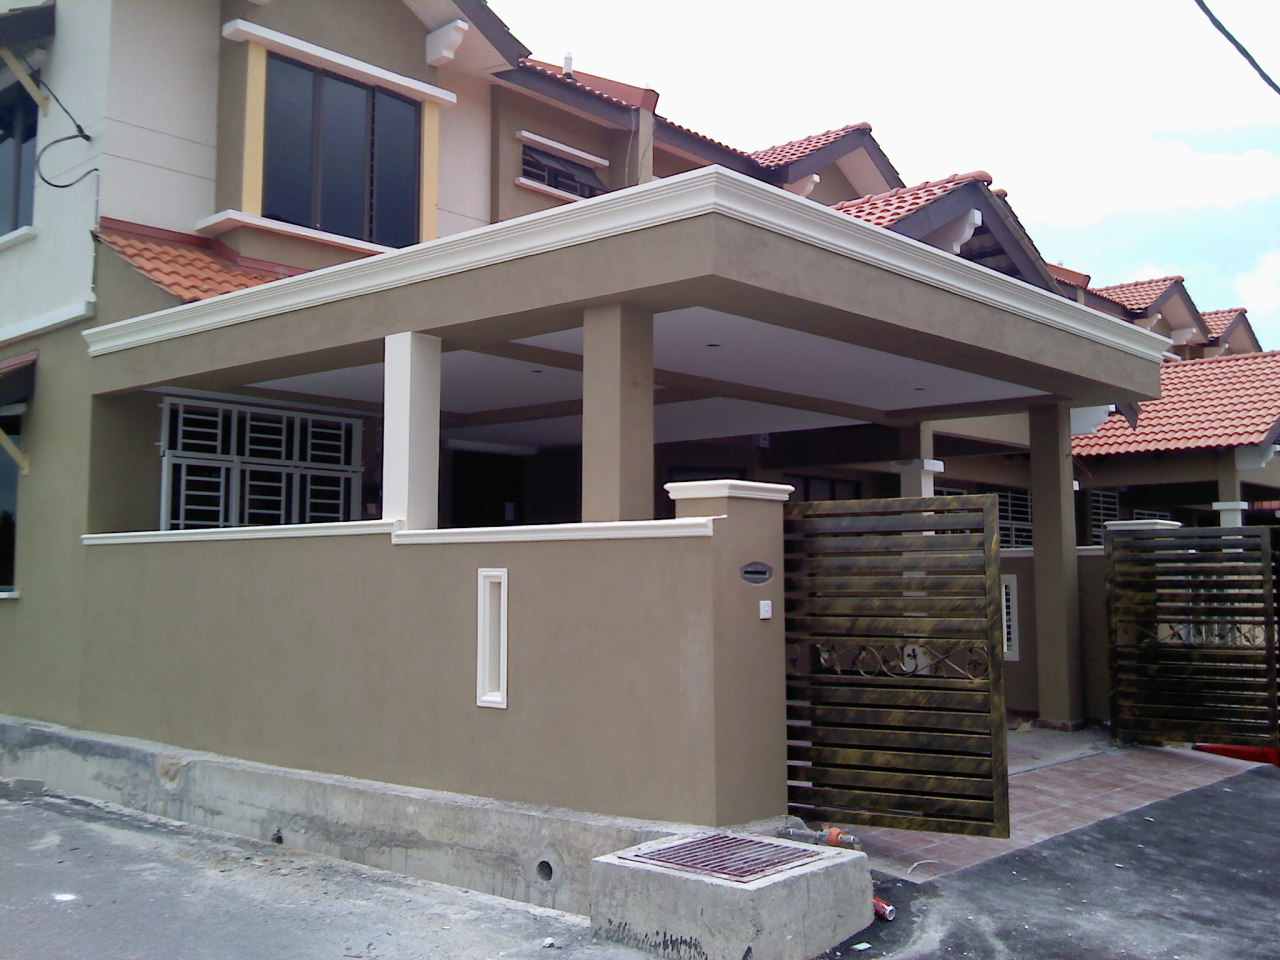 Car Porch Extension + Fencing Wall + Auto Gate + Floor Tiles